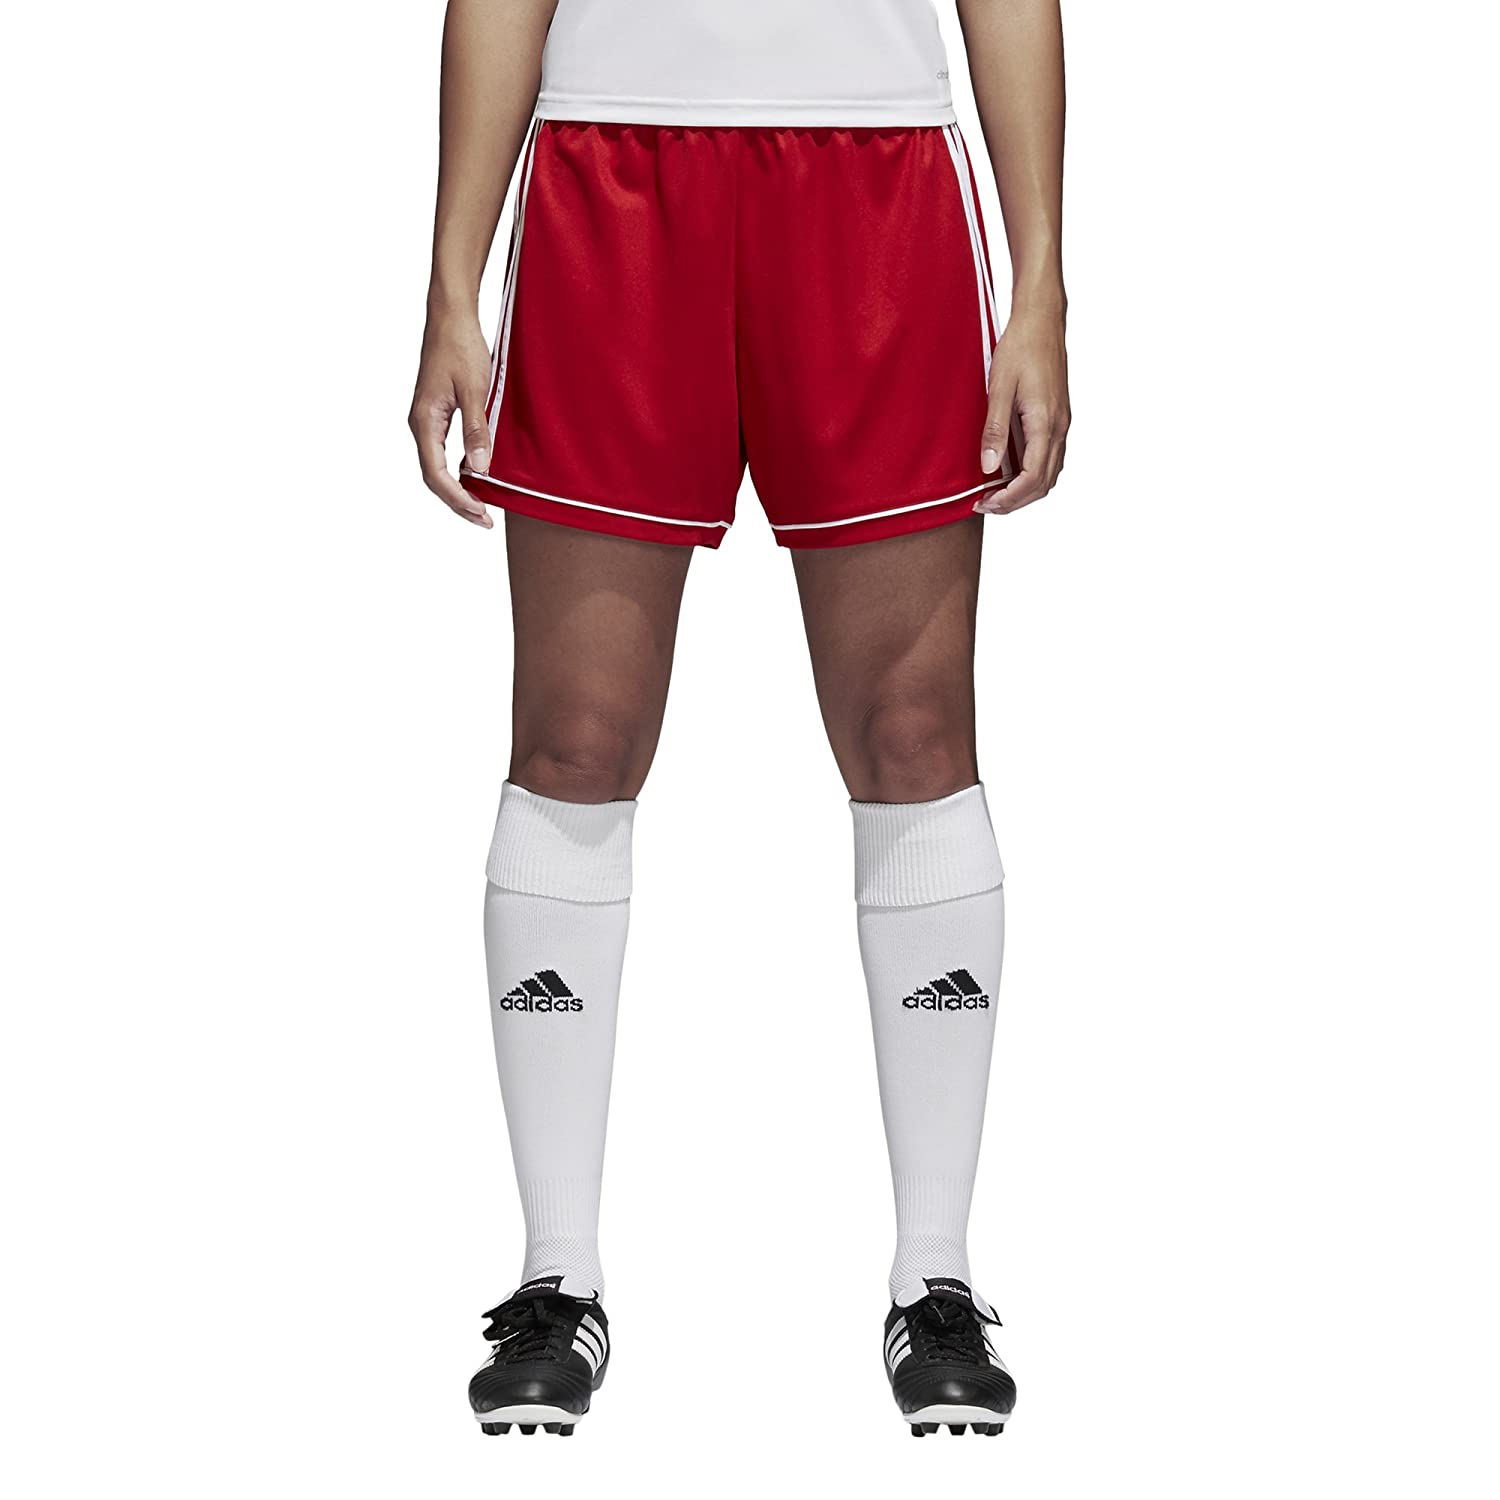 AdidasレディースサッカーSquadra 17 Shorts B01HE3CG2U 3L|Power Red/White Power Red/White 3L